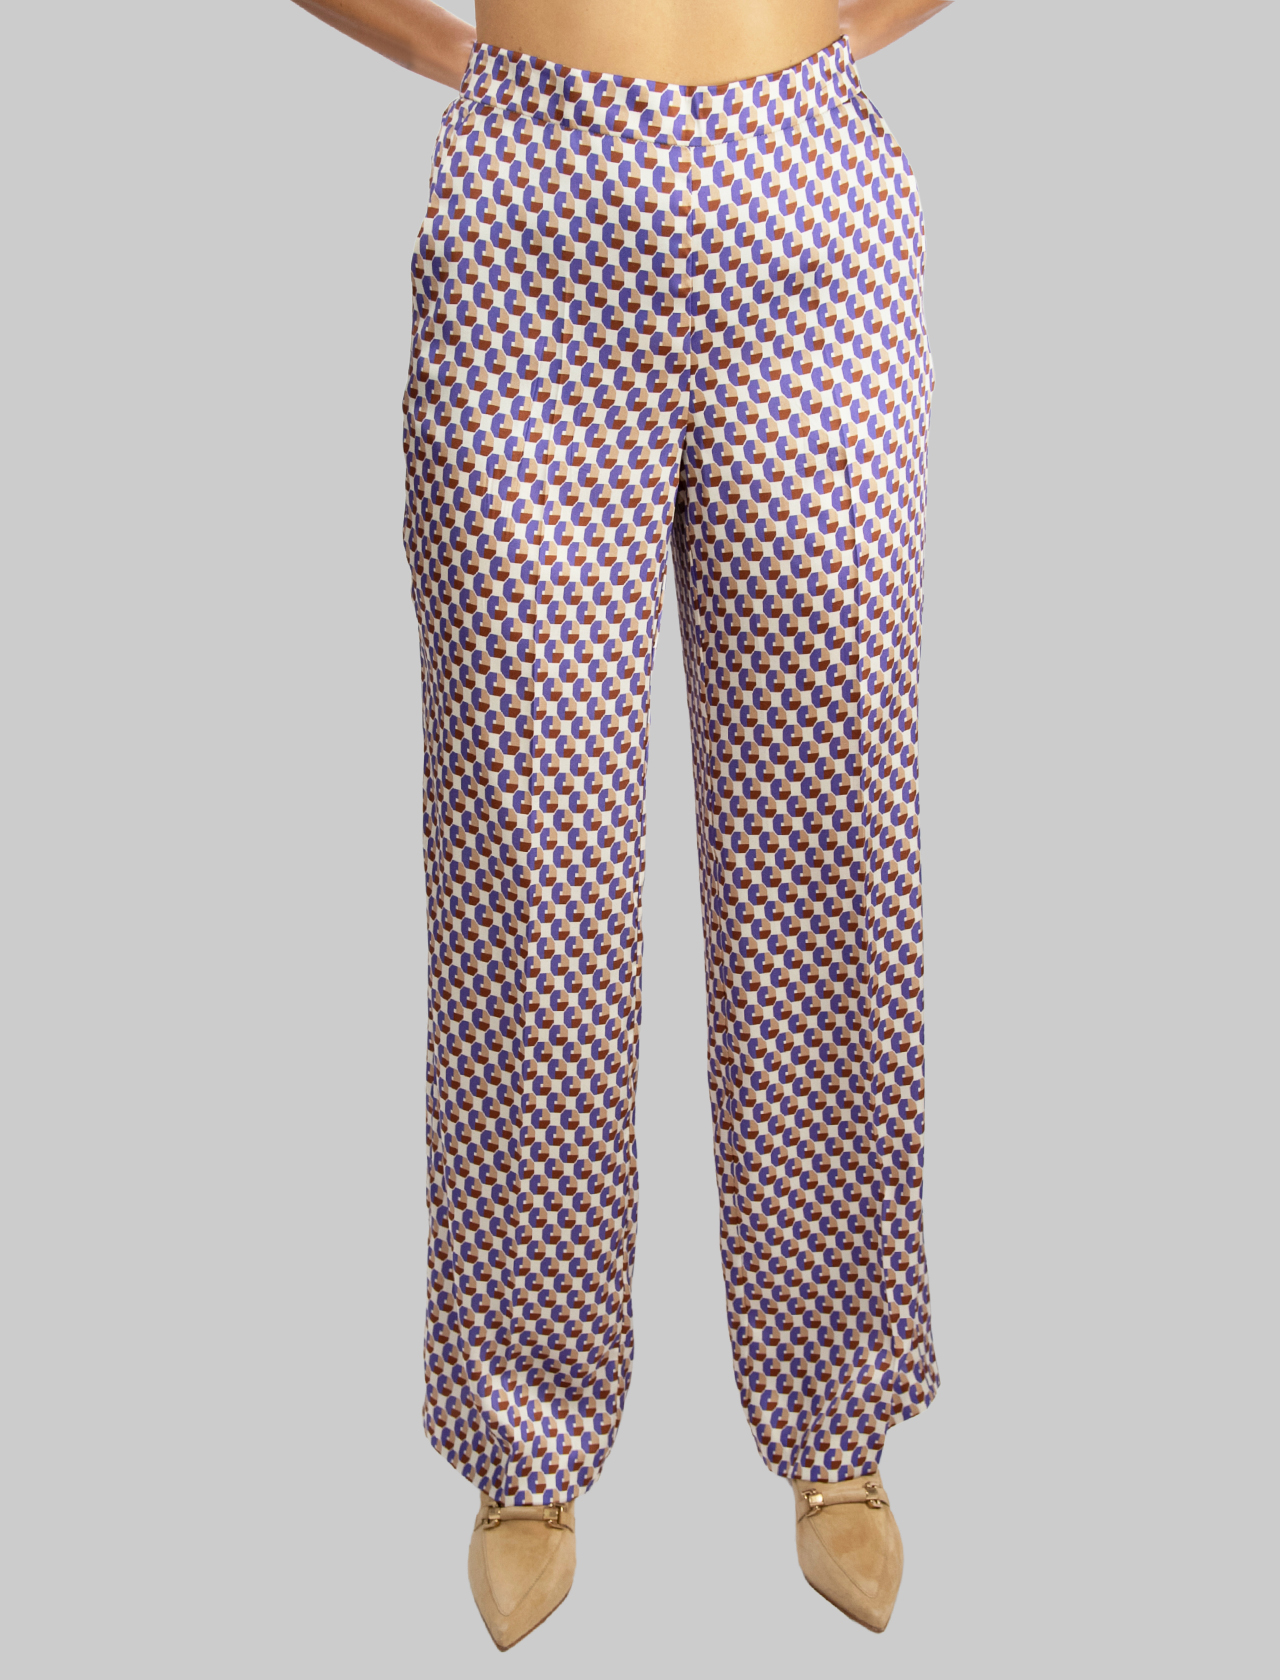 Women's Clothing Geometric Twill Straight Leg Trousers in Beige and Purple Maliparmi | Skirts and Pants | JH738560047B1236